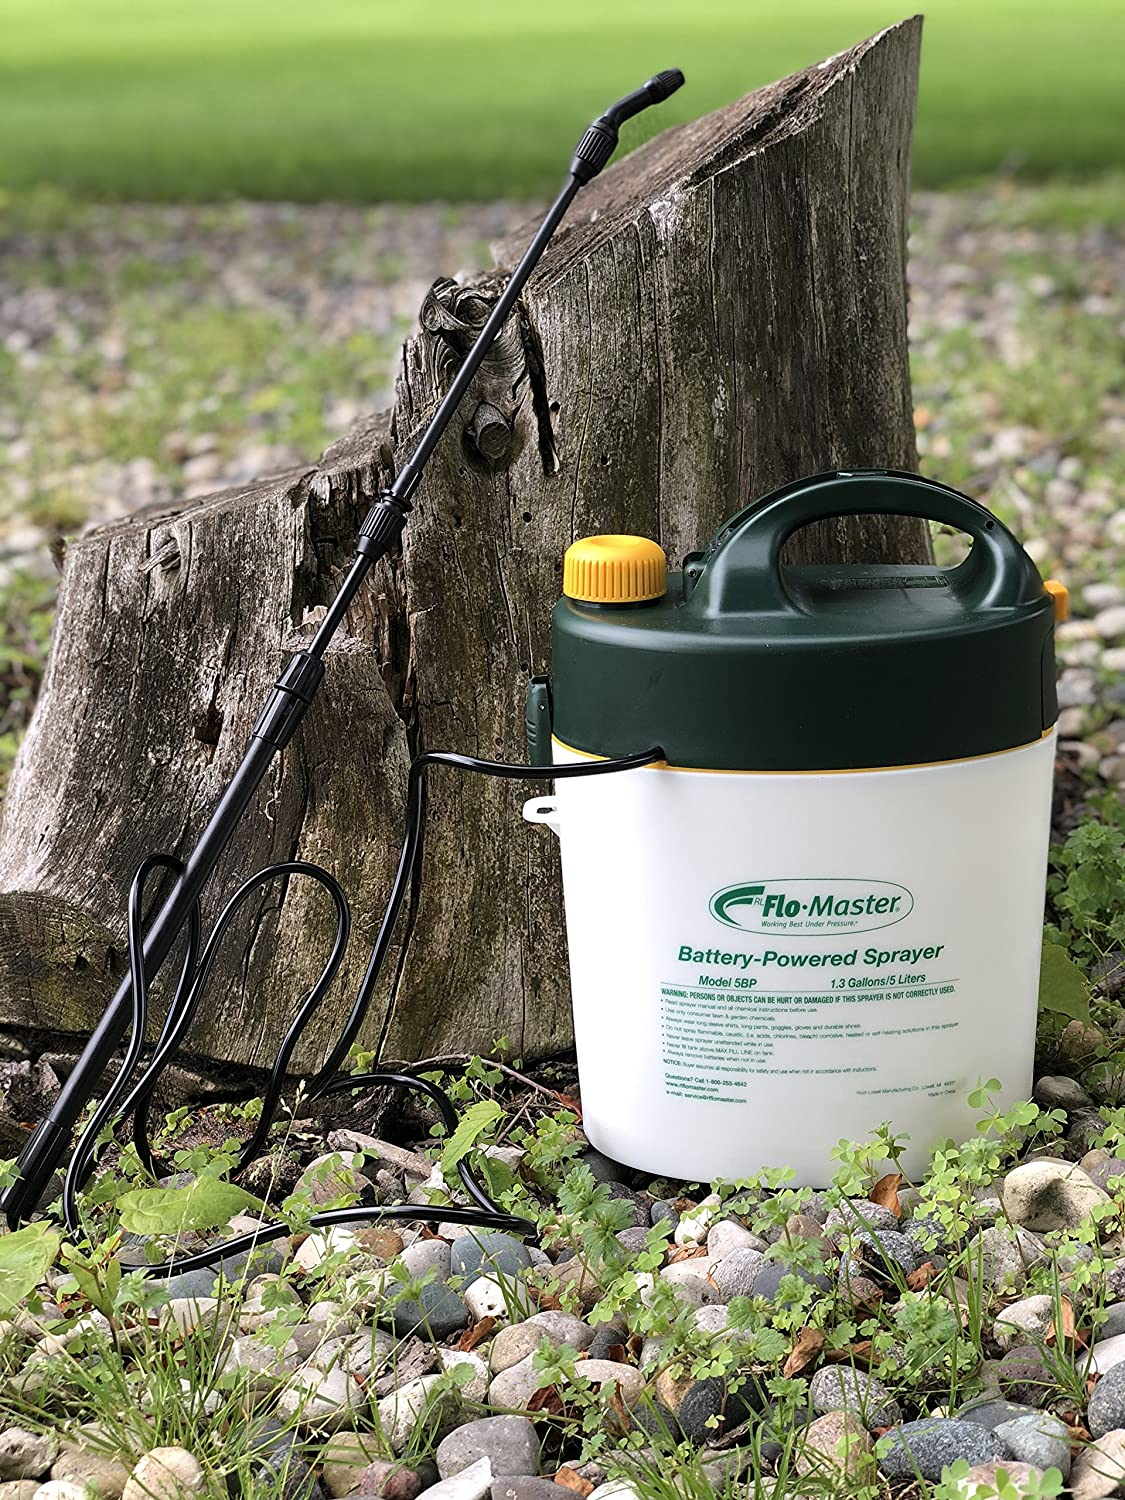 What you need to know before buying a garden sprayer